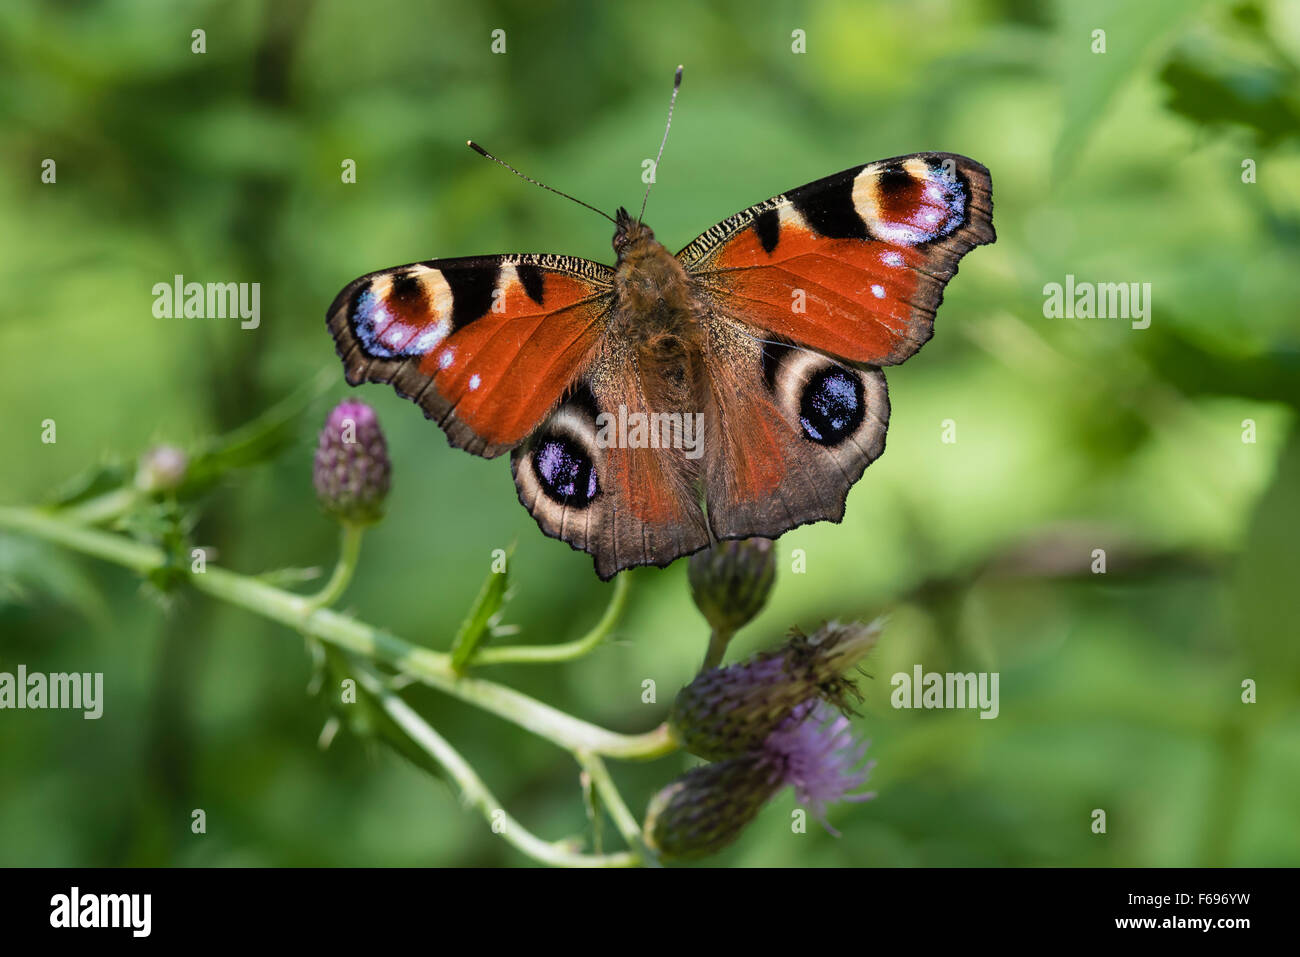 Tagpfauenauge, Aglais io, European peacock butterfly Photo Stock